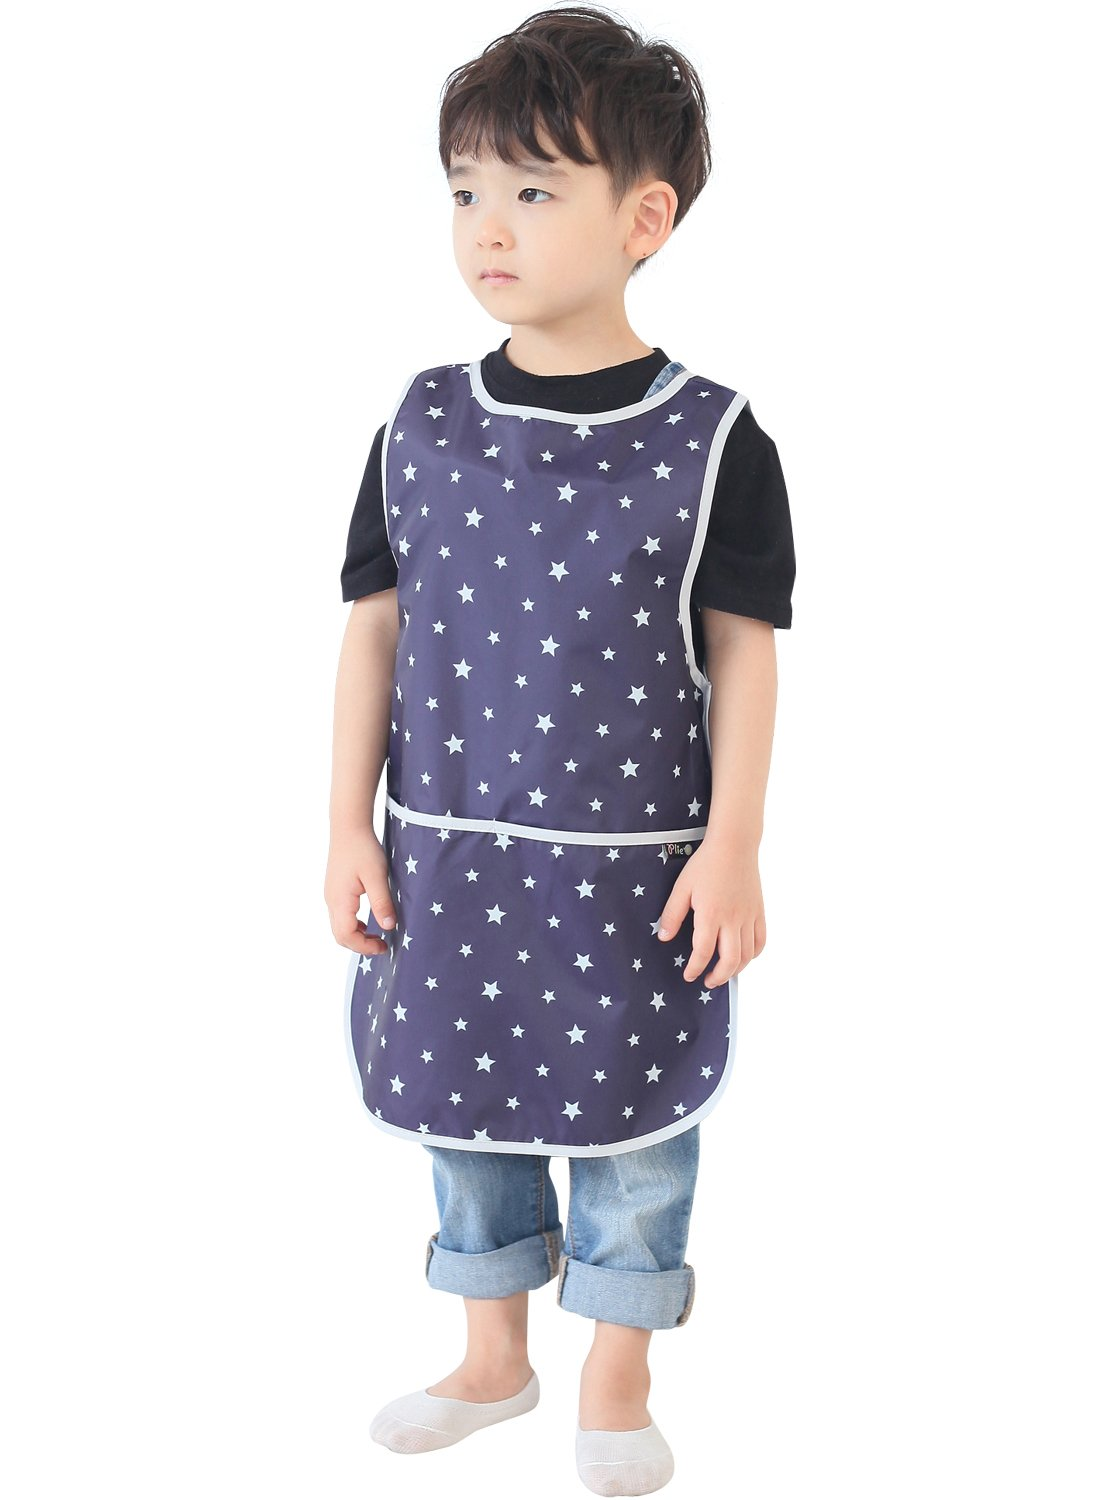 12-XL Begie Star Plie Children Waterproof Sleeveless Art Smock Apron with Pockets